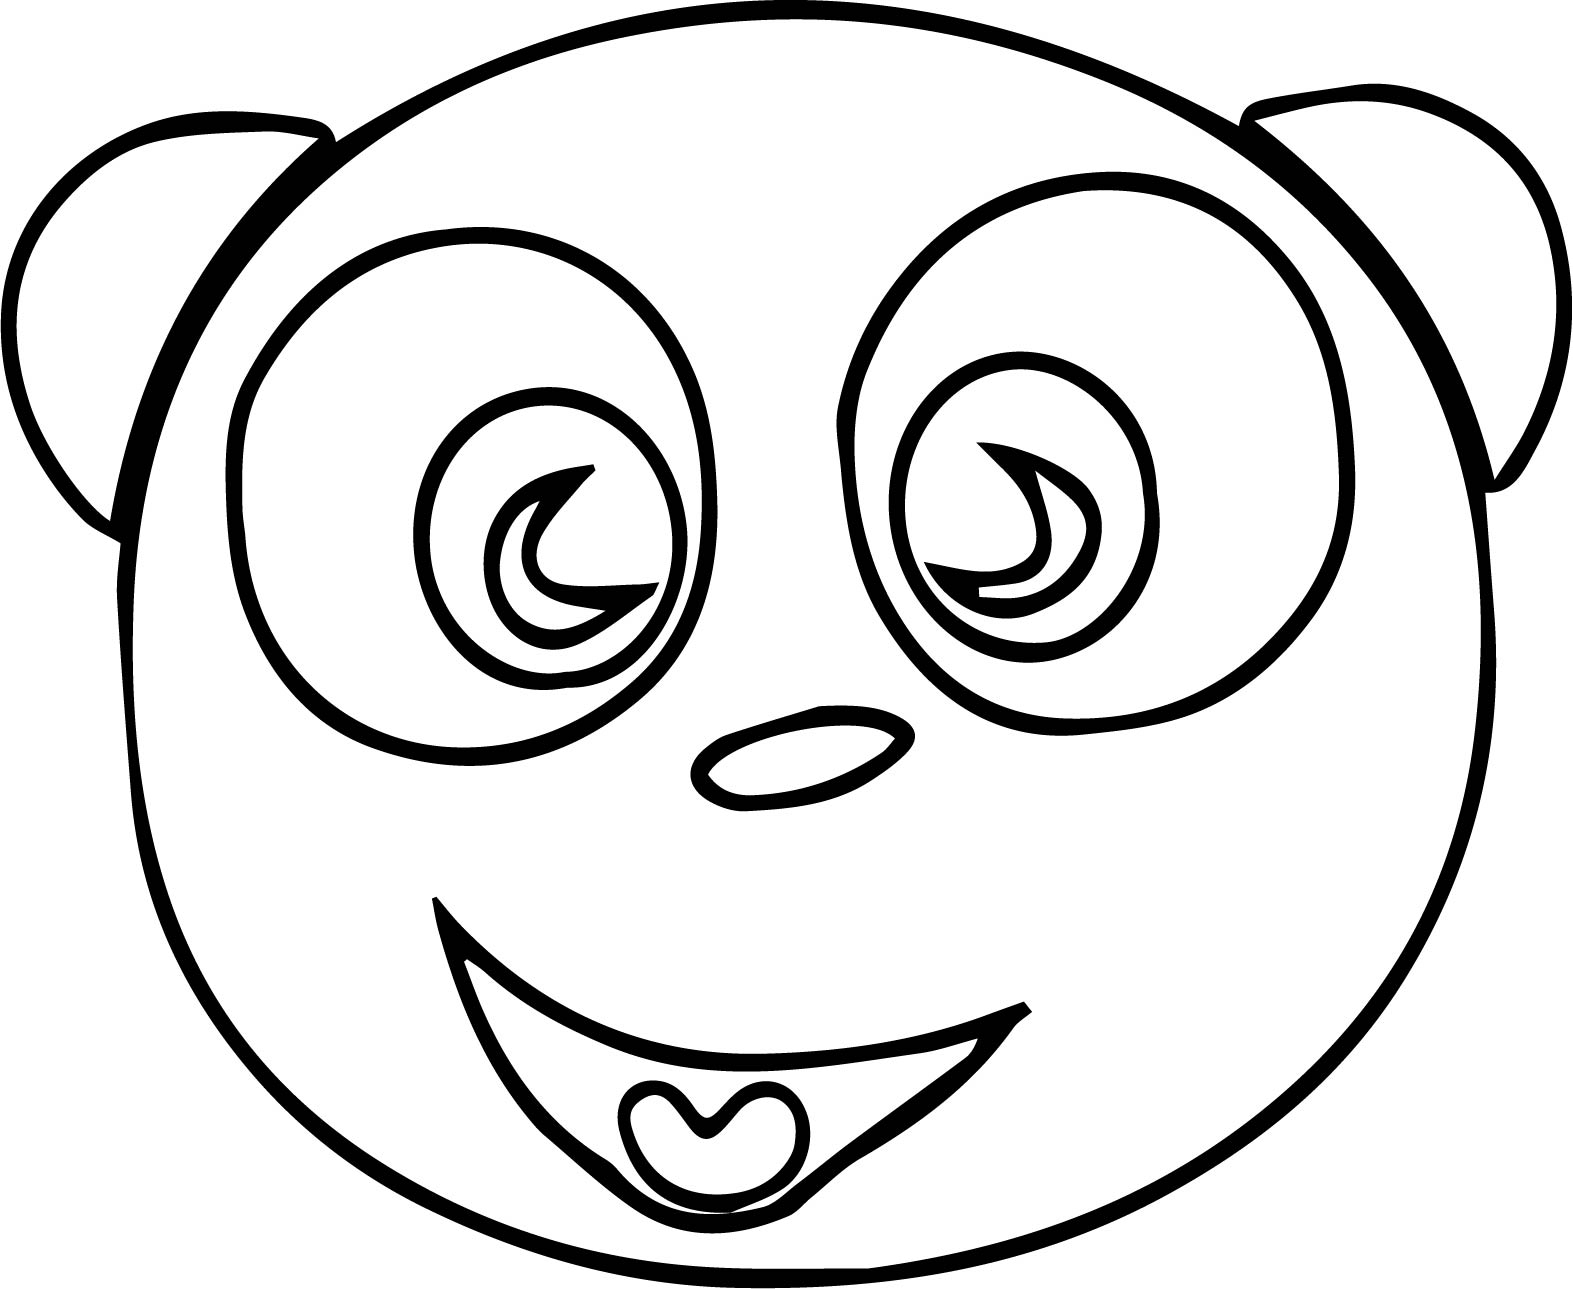 dog face coloring pages happy dog face free image coloring page wecoloringpagecom dog coloring pages face